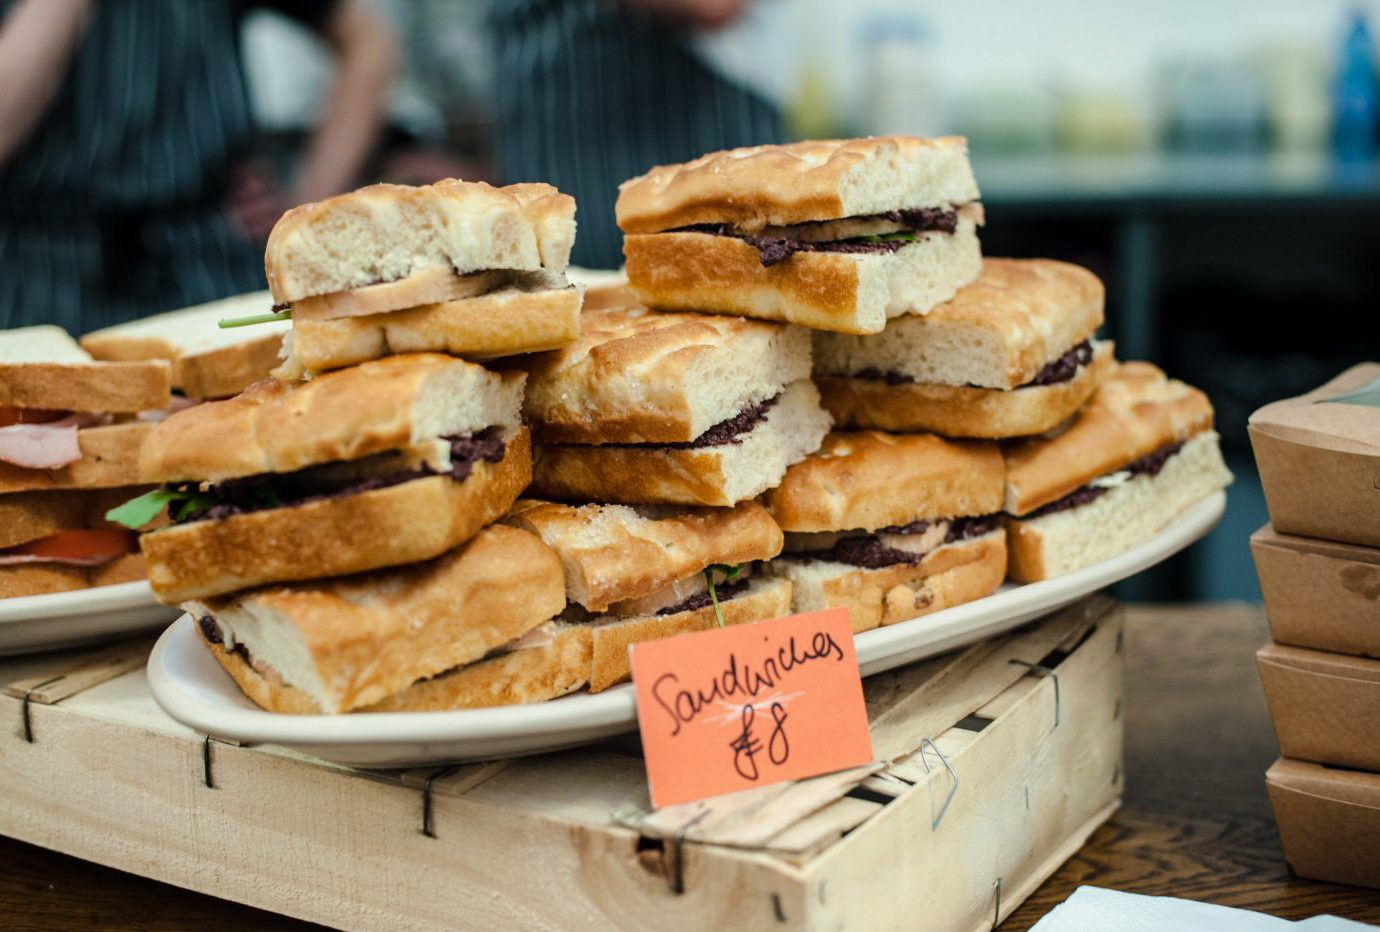 Offbeat Trip Ideas food table baked goods finger food cuisine dish cookies and crackers breakfast baking snack brunch welsh cake flavor snack food stack